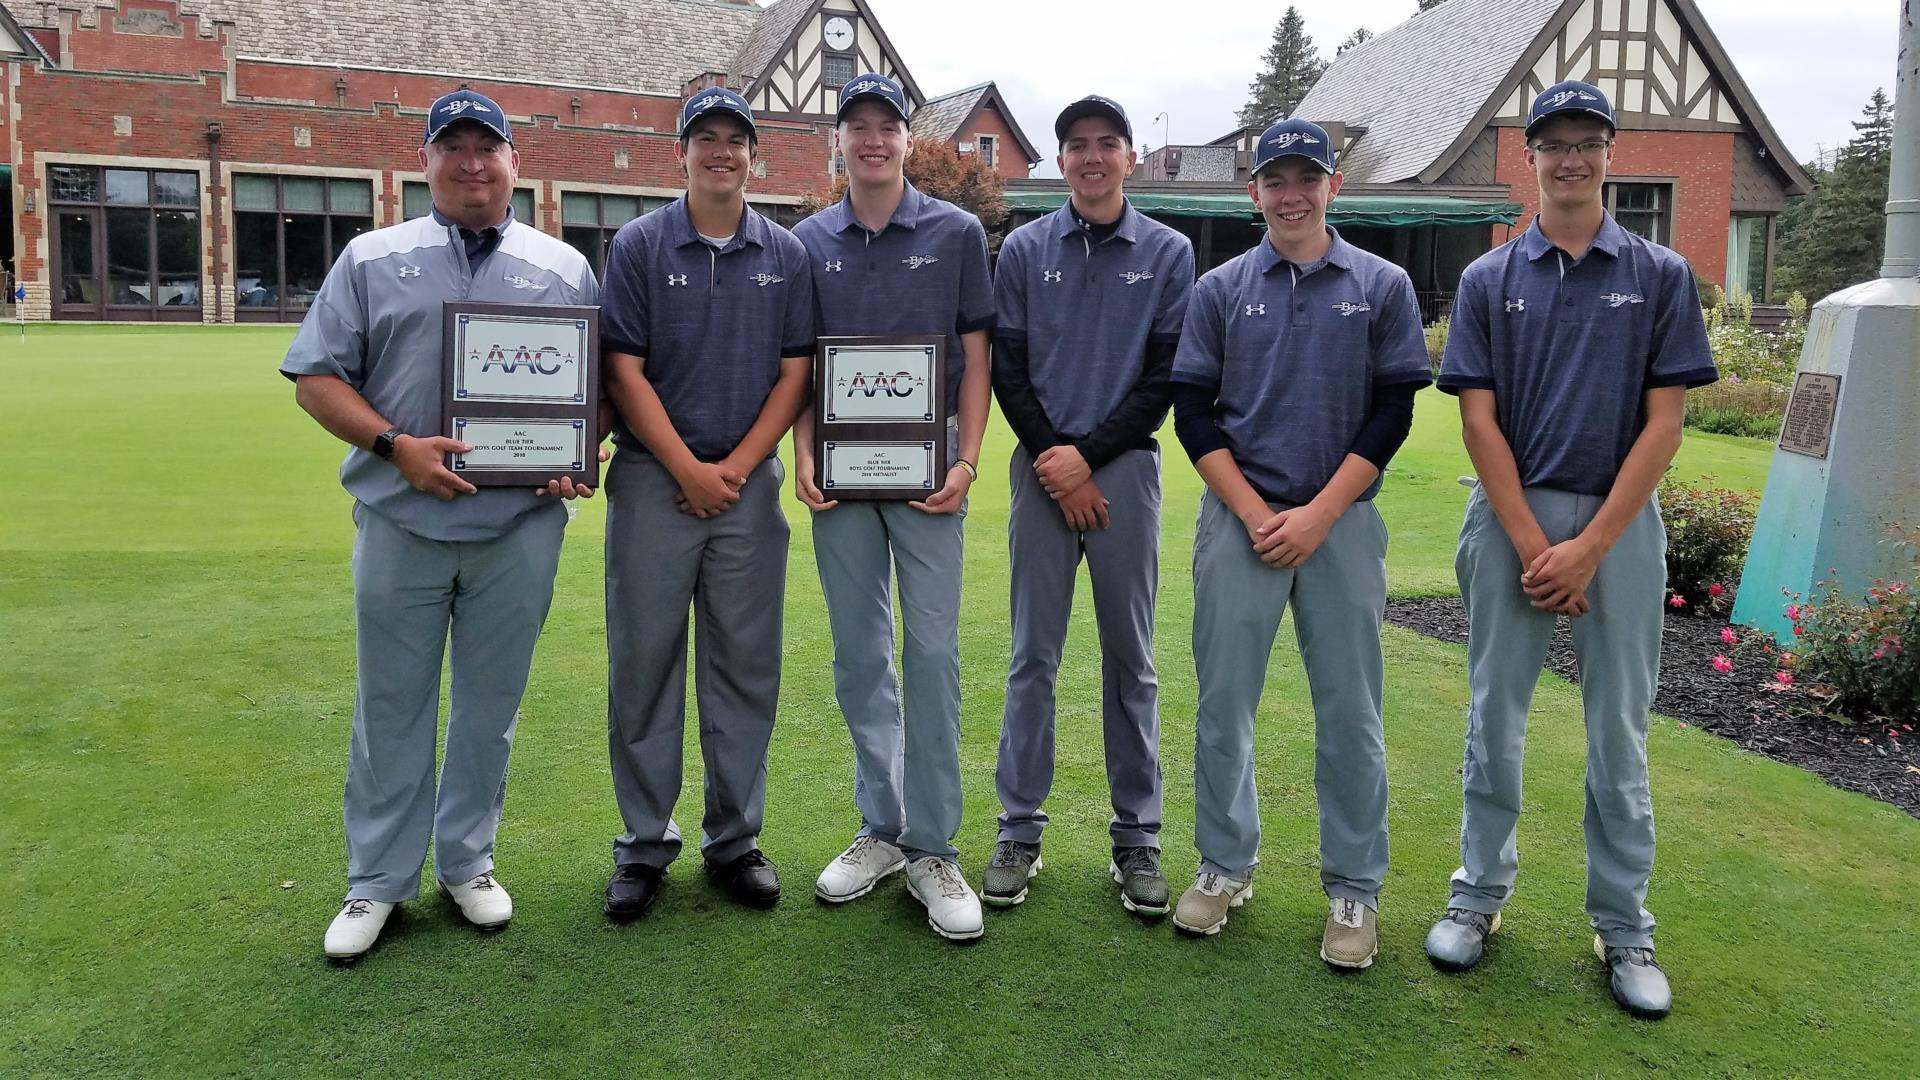 golf team aac champs